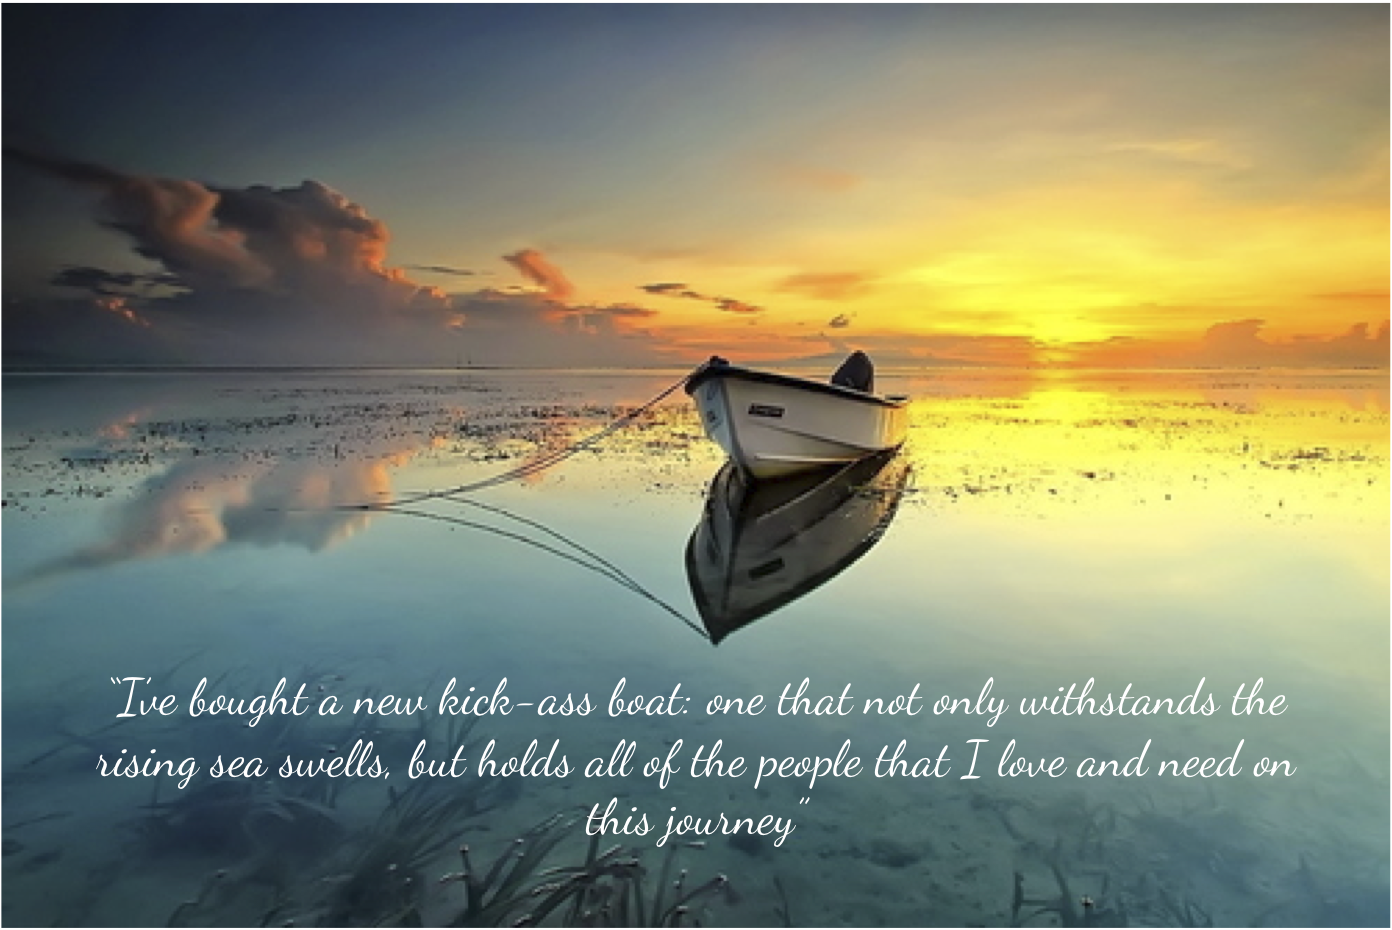 boat journey quotes